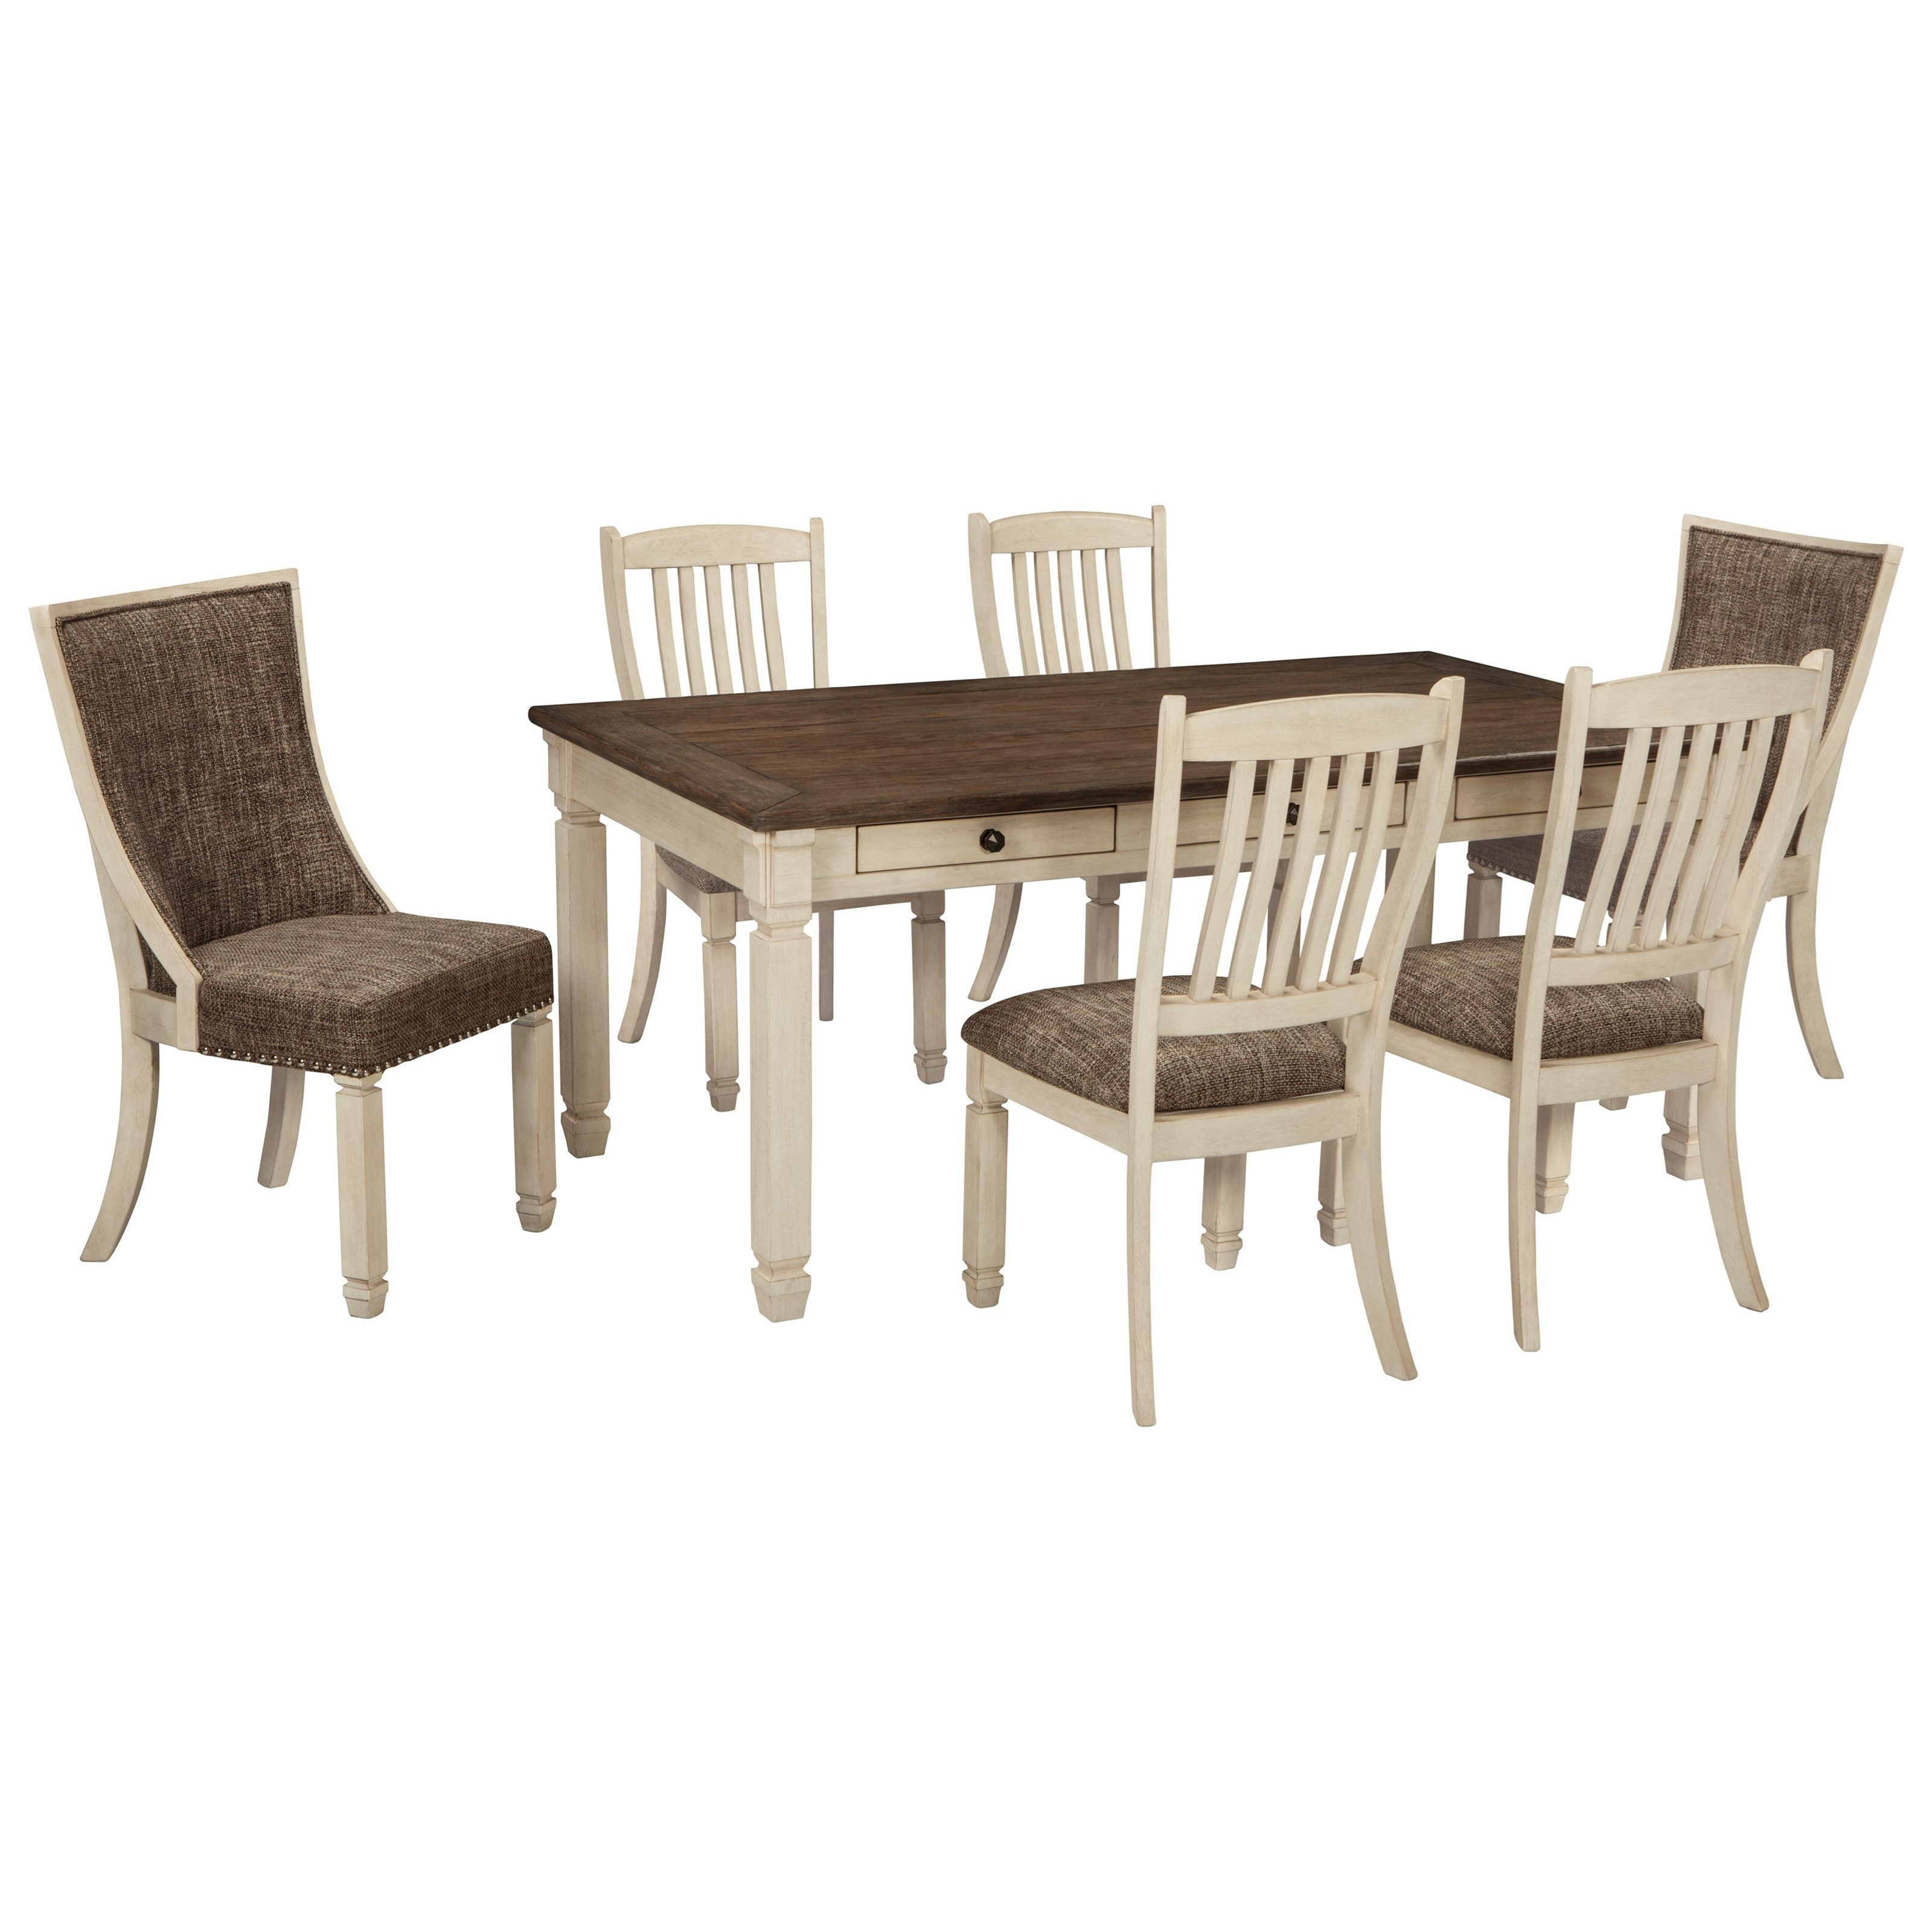 Bolanburg 7-Piece Table and Chair Set by Ashley (Signature Design) at Johnny Janosik